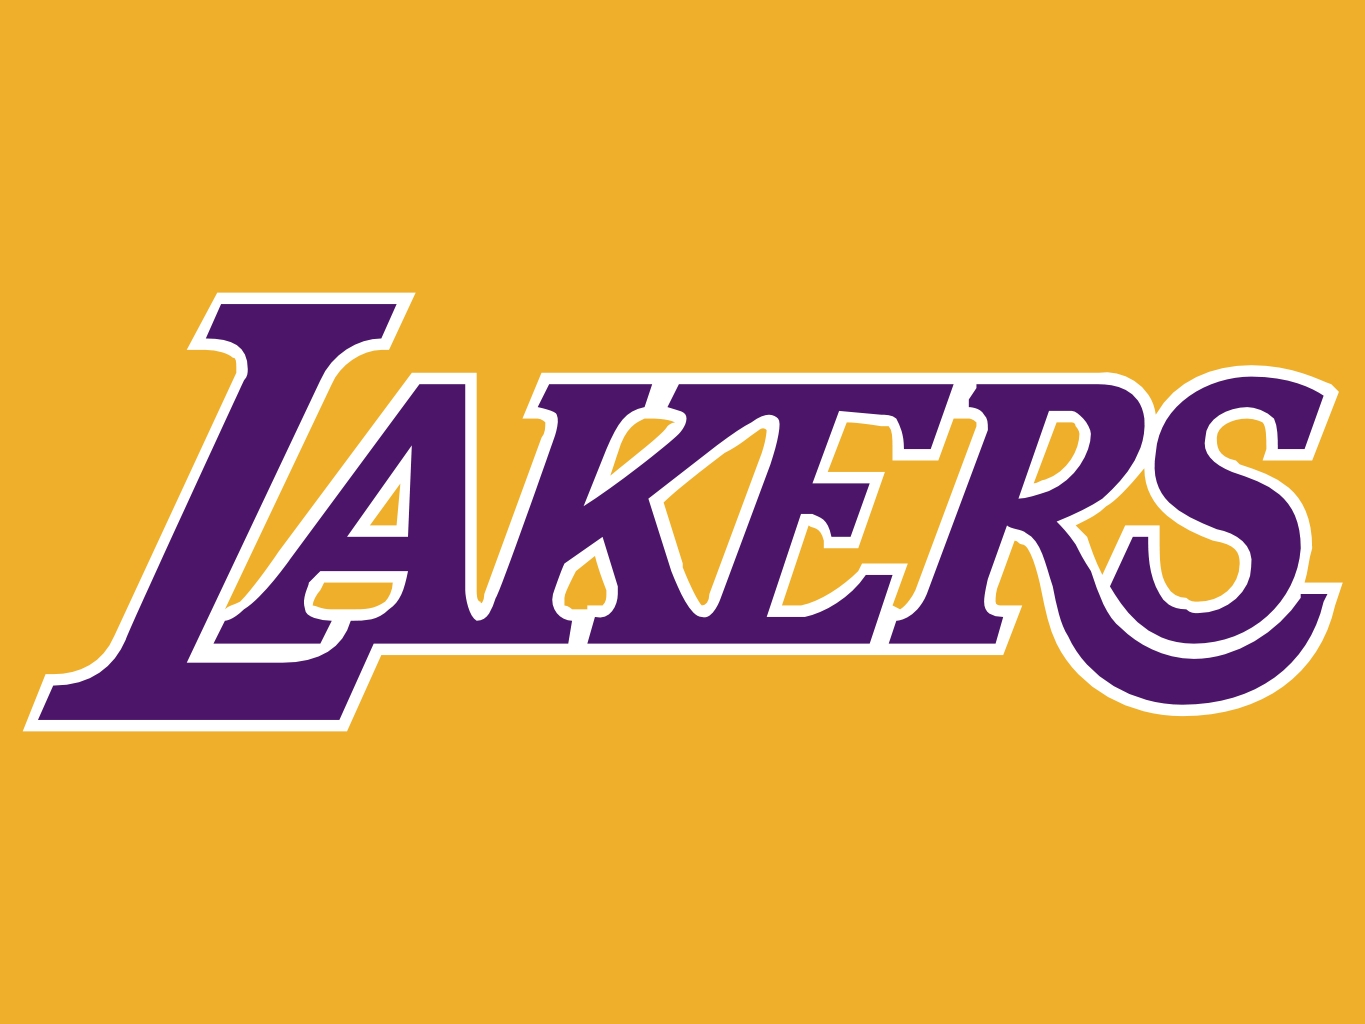 Los Angeles Quotes Wallpapers Lakers World Of Desire